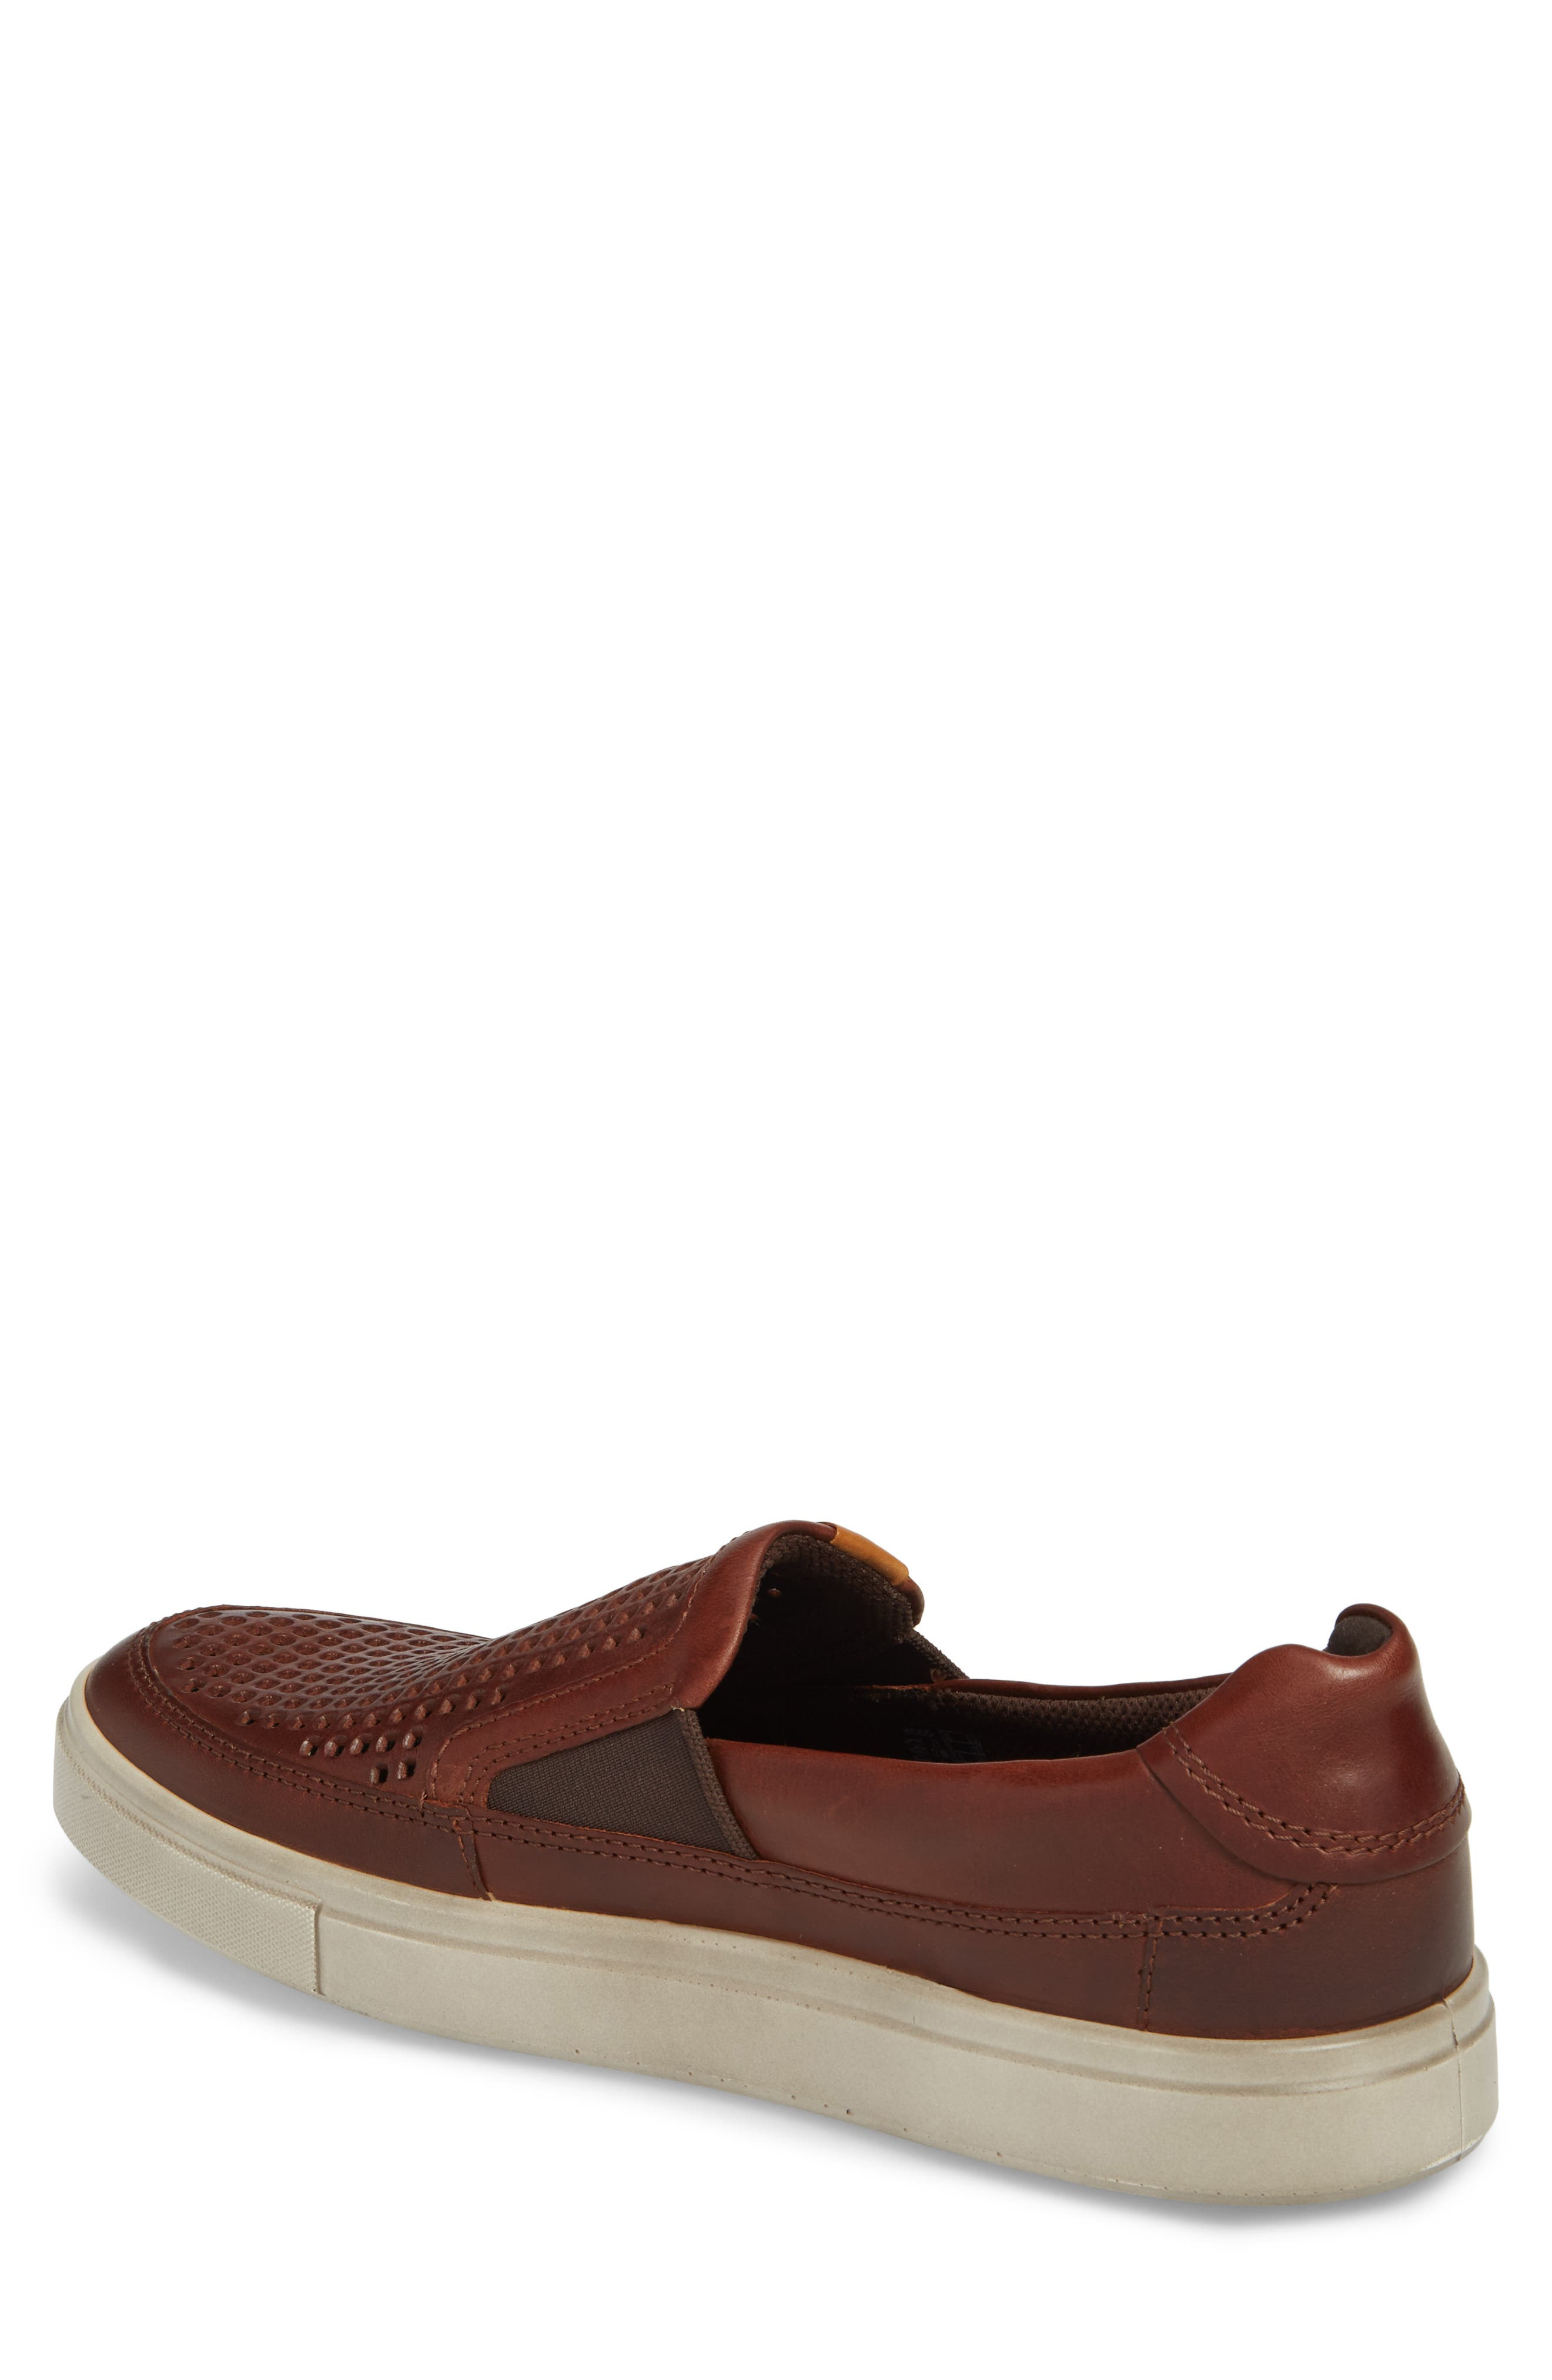 Kyle Perforated Slip-On Sneaker,                             Alternate thumbnail 2, color,                             COGNAC LEATHER